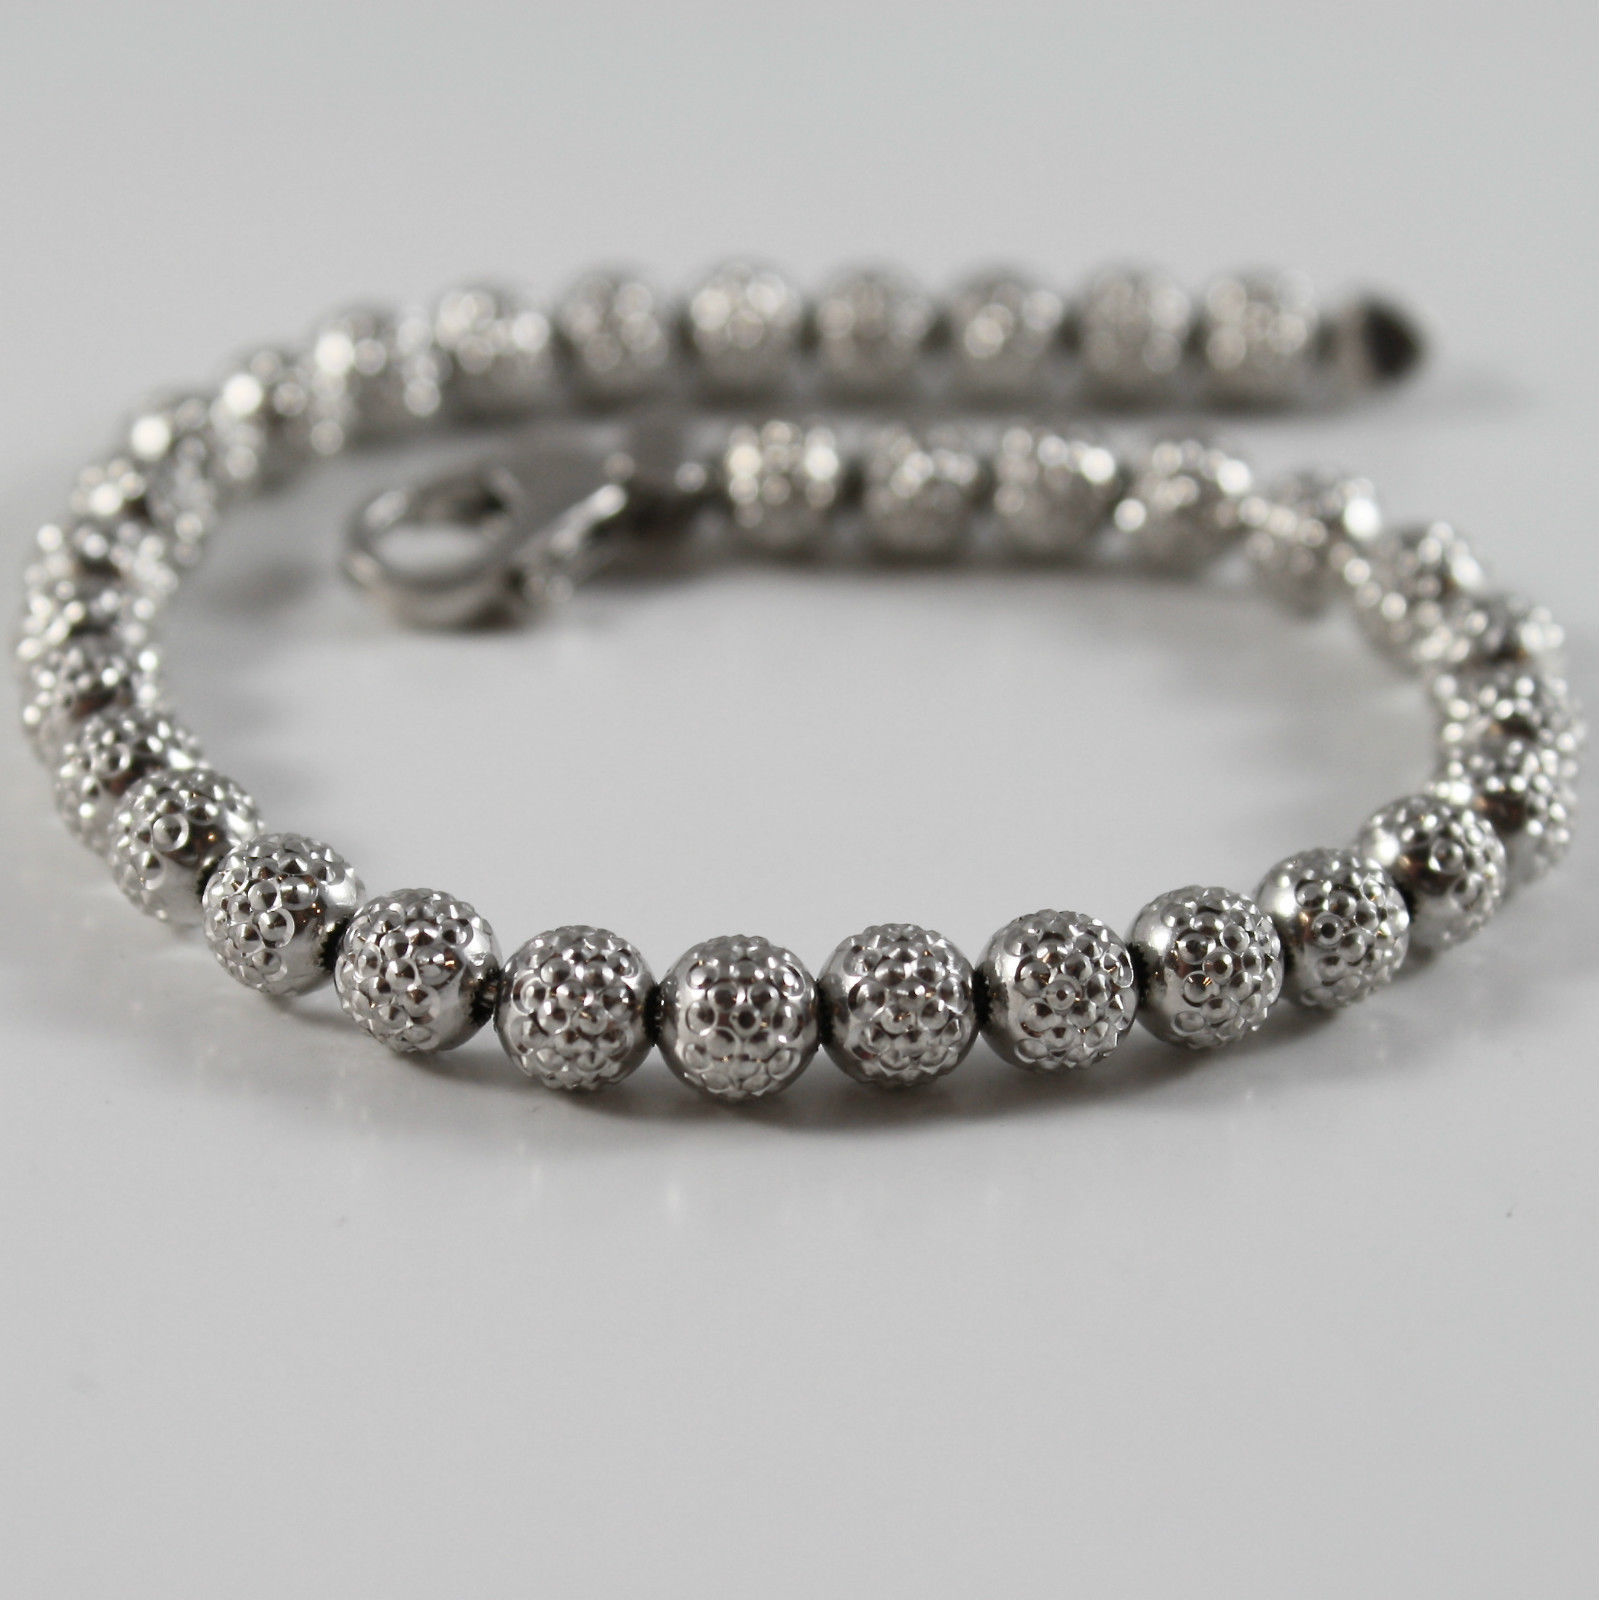 925 RHODIUM SILVER BRACELET OFFICINA BERNARDI WITH FACETED BALLS MADE IN ITALY